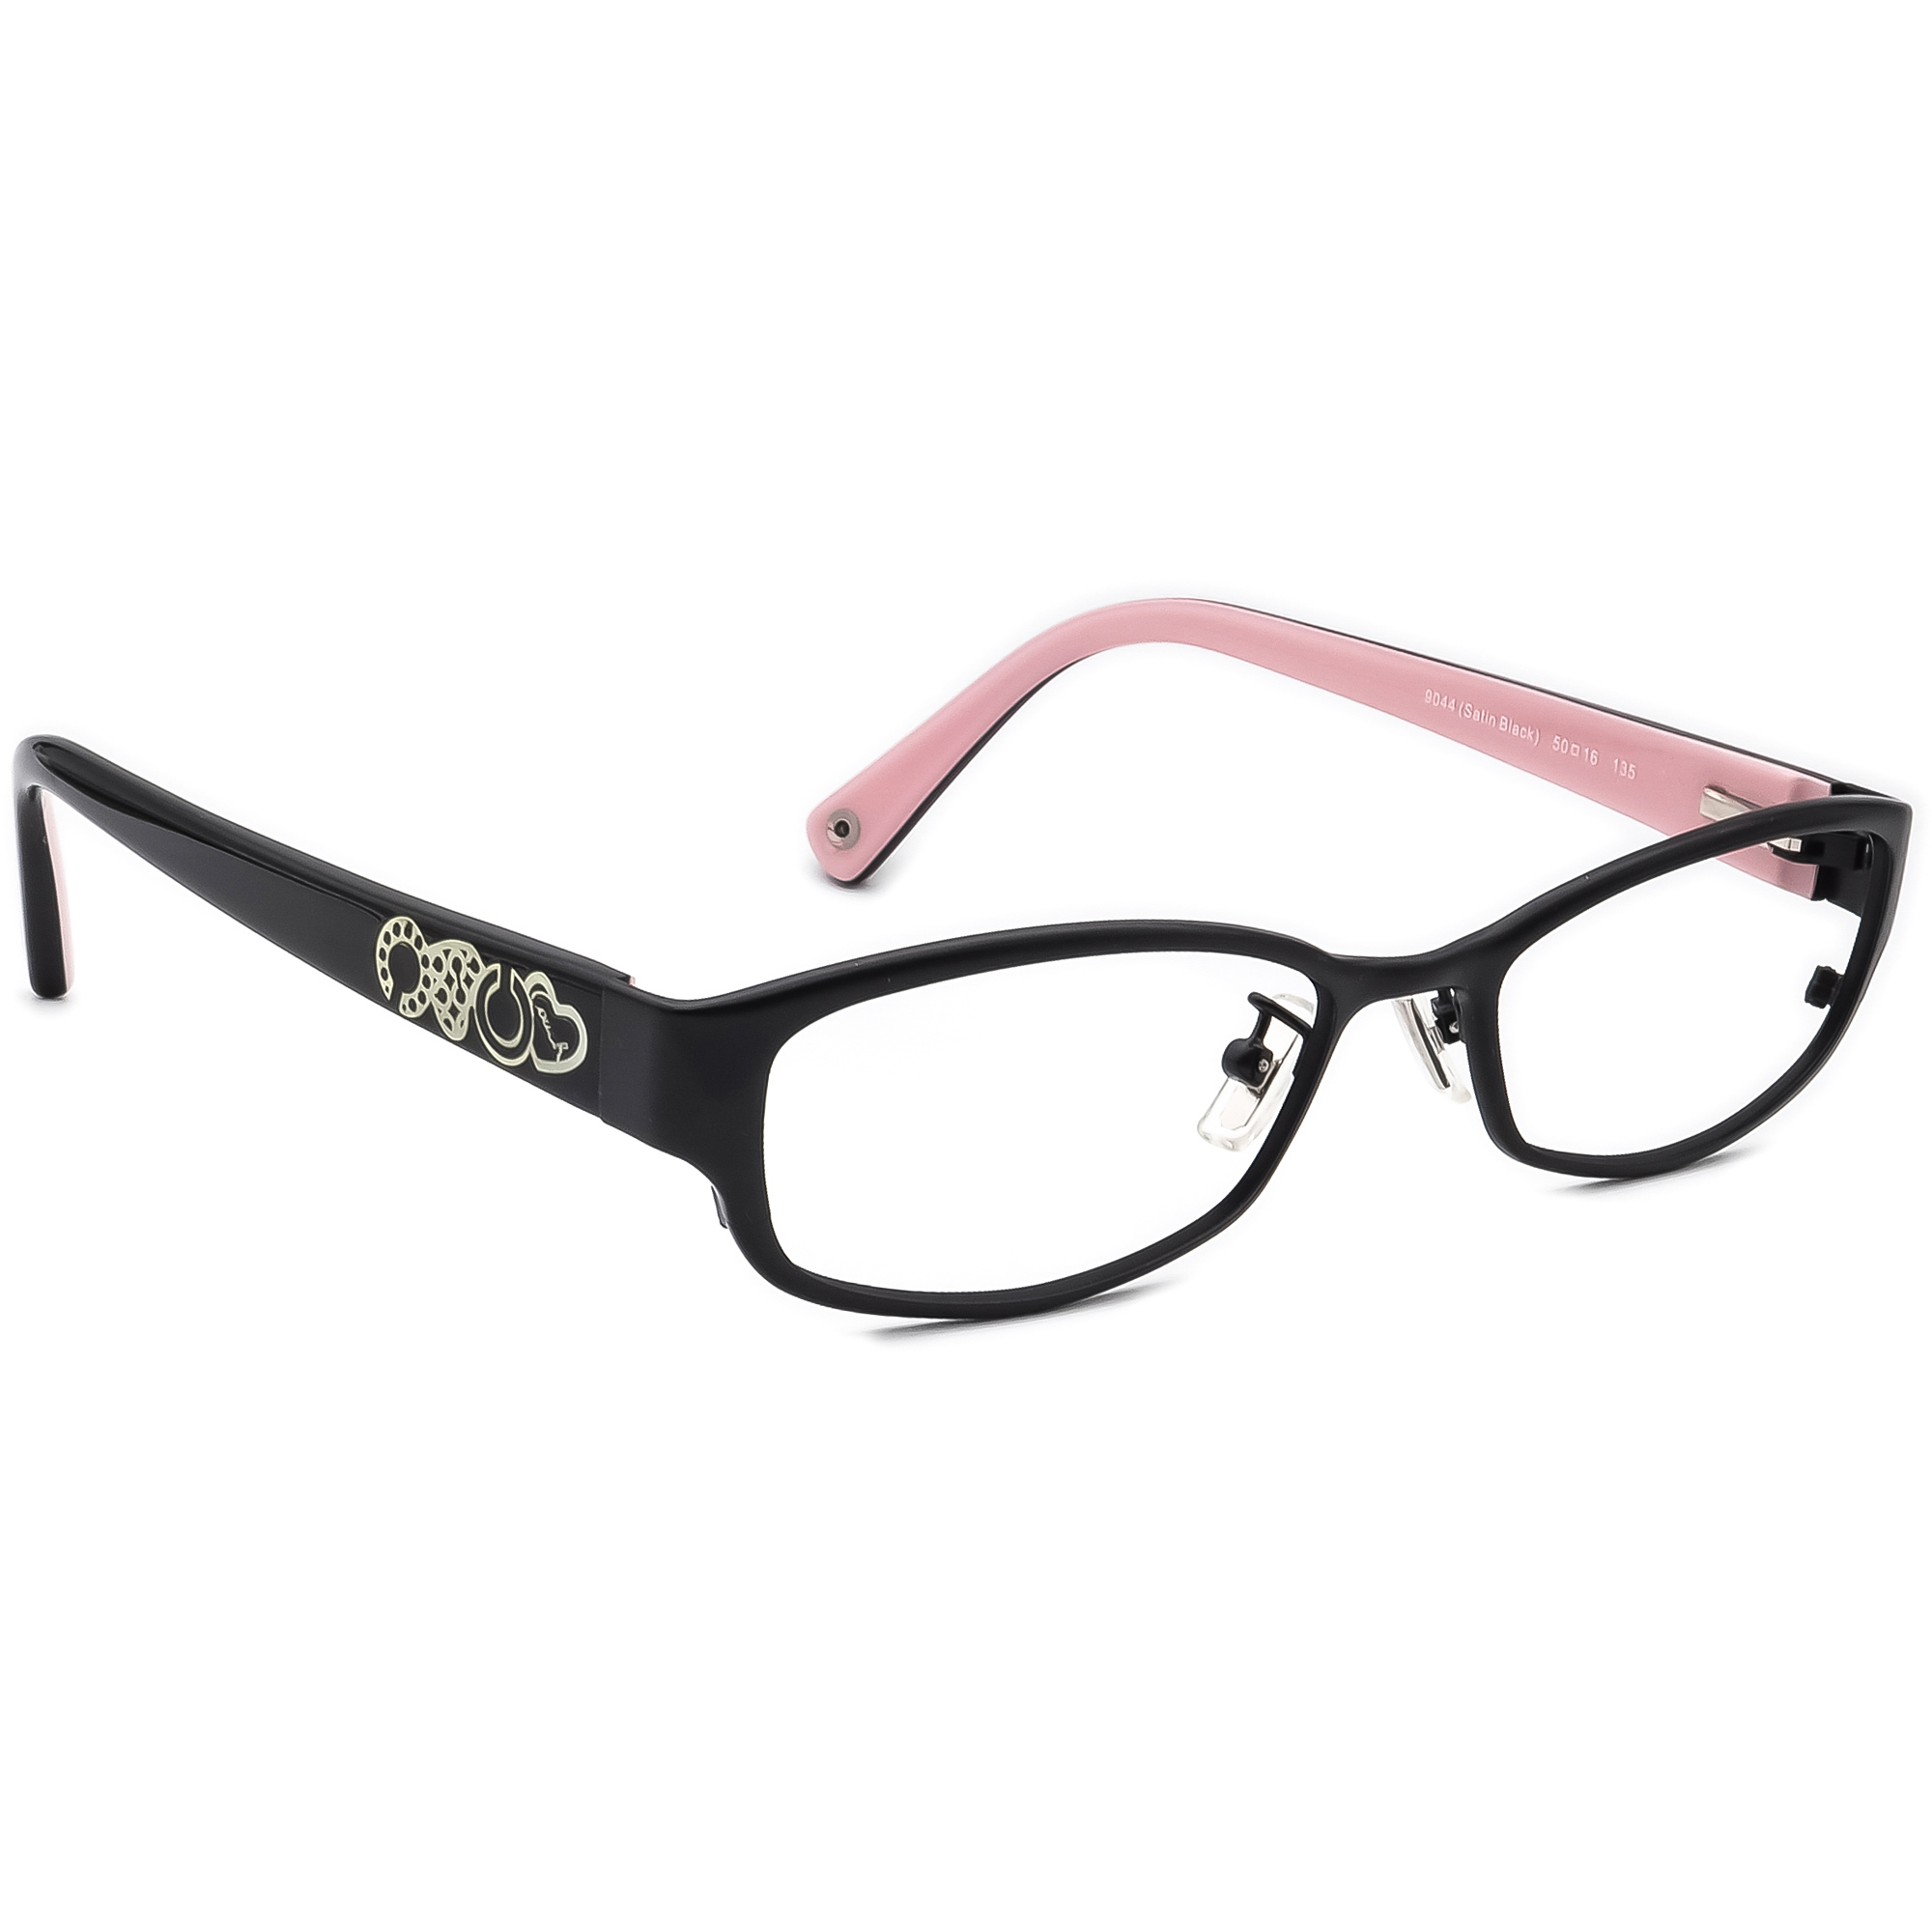 Coach HC 5007 (Willow) 9044 Eyeglasses